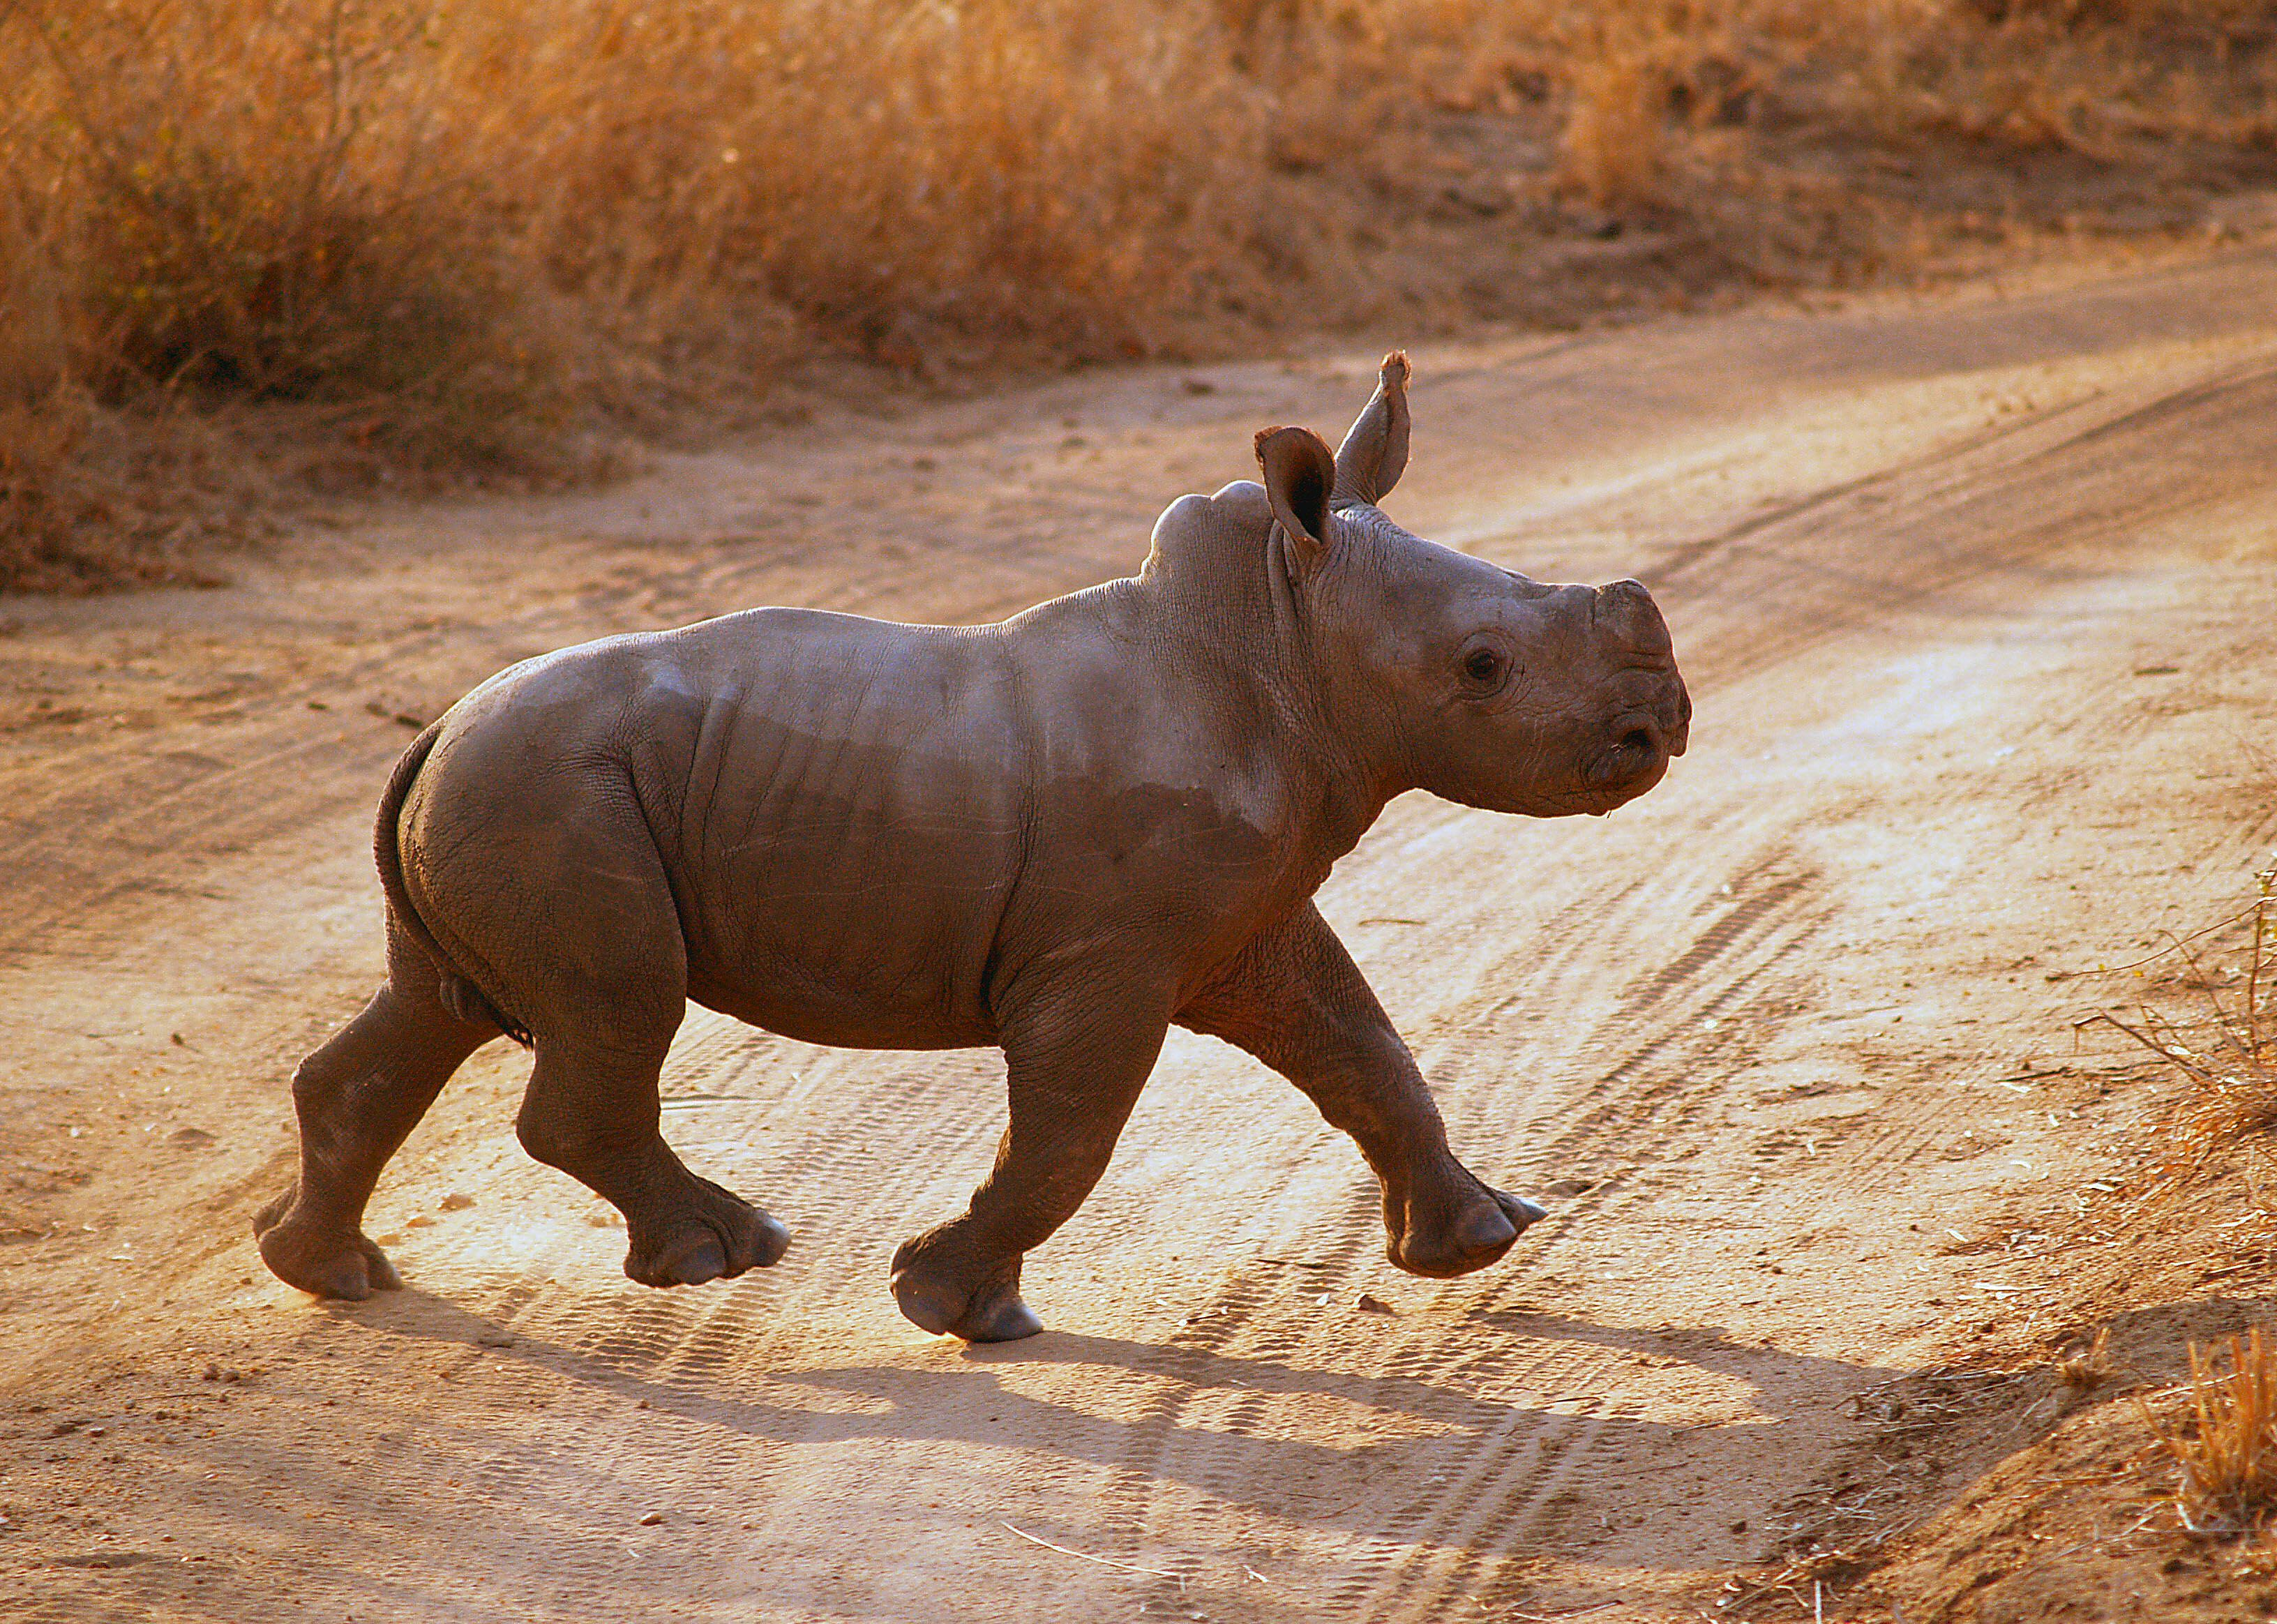 A baby rhino trots proudly behind his much larger and very ...